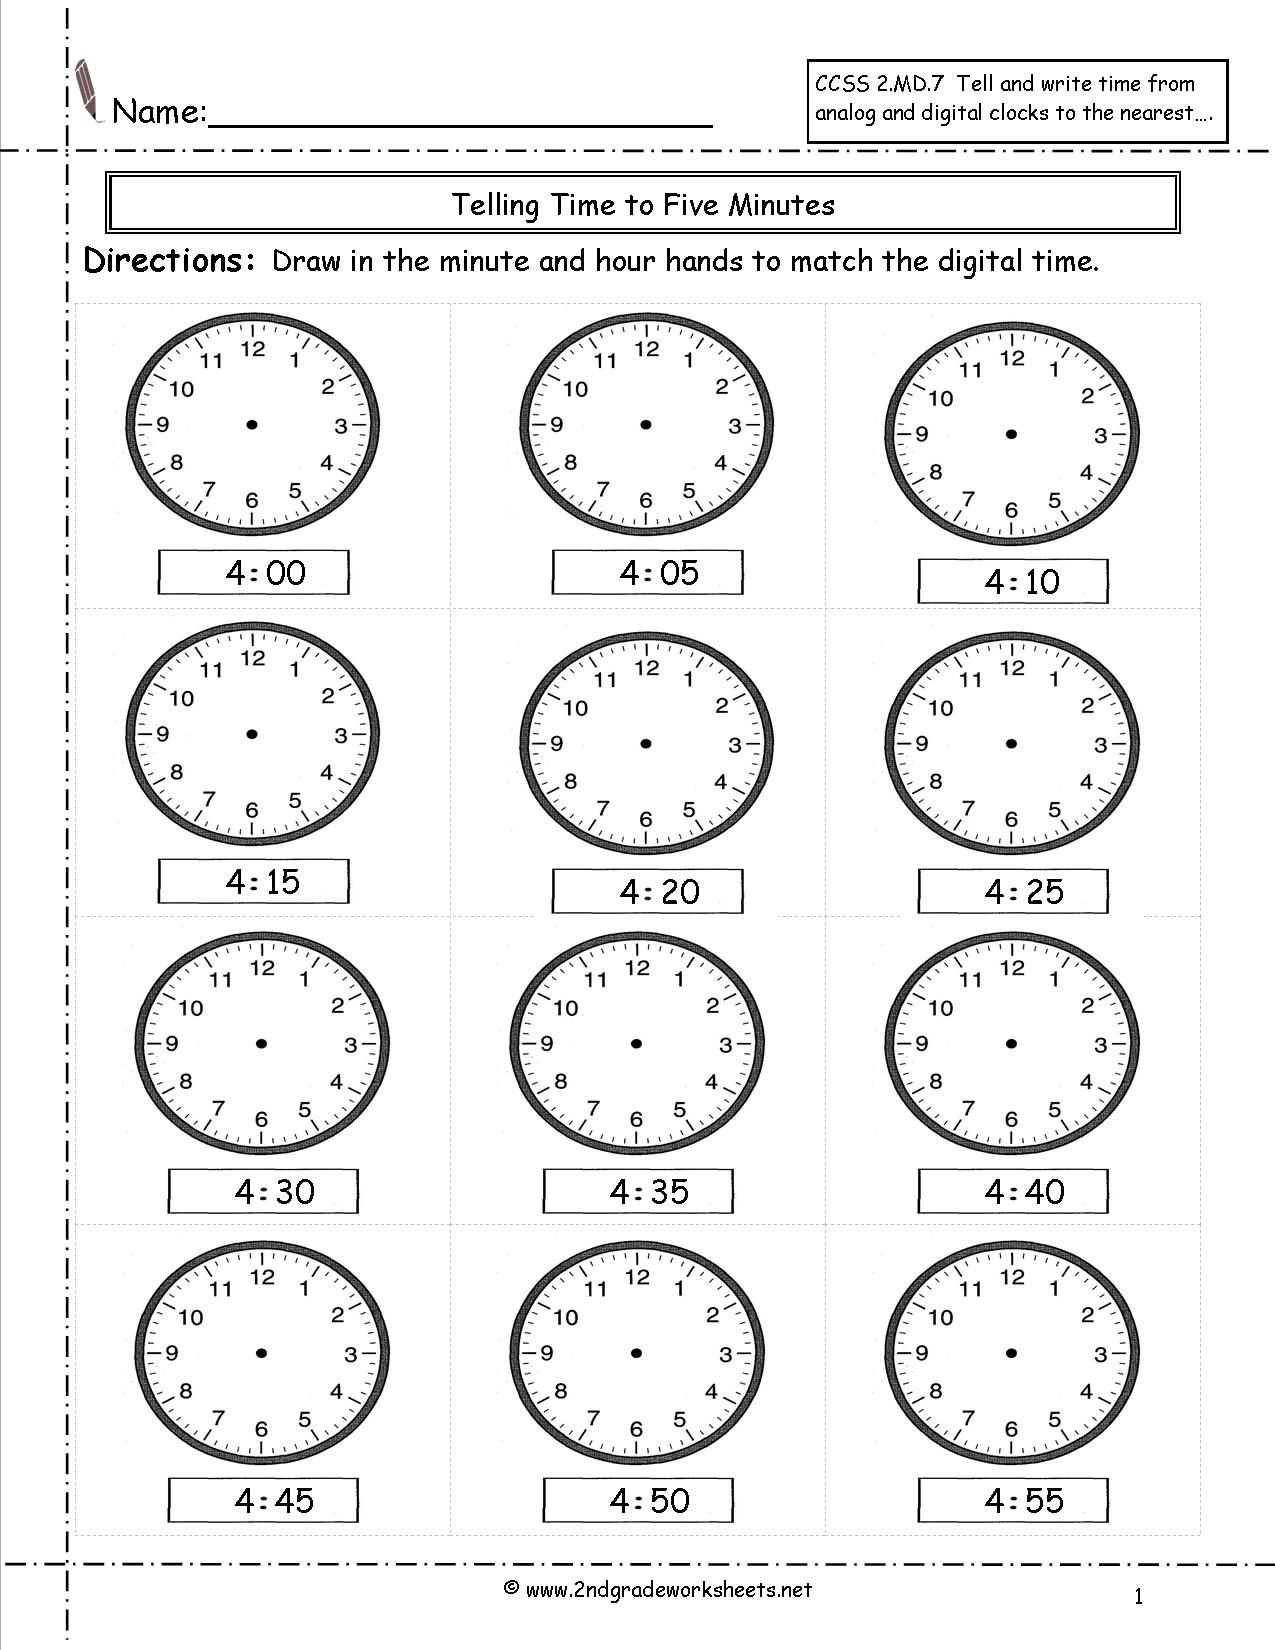 Marvellous Telling And Writing Time Worksheets Clock To The Hour  Tellingtimedrawhandsfourtofourfift ~ …   Telling time worksheets [ 1650 x 1275 Pixel ]